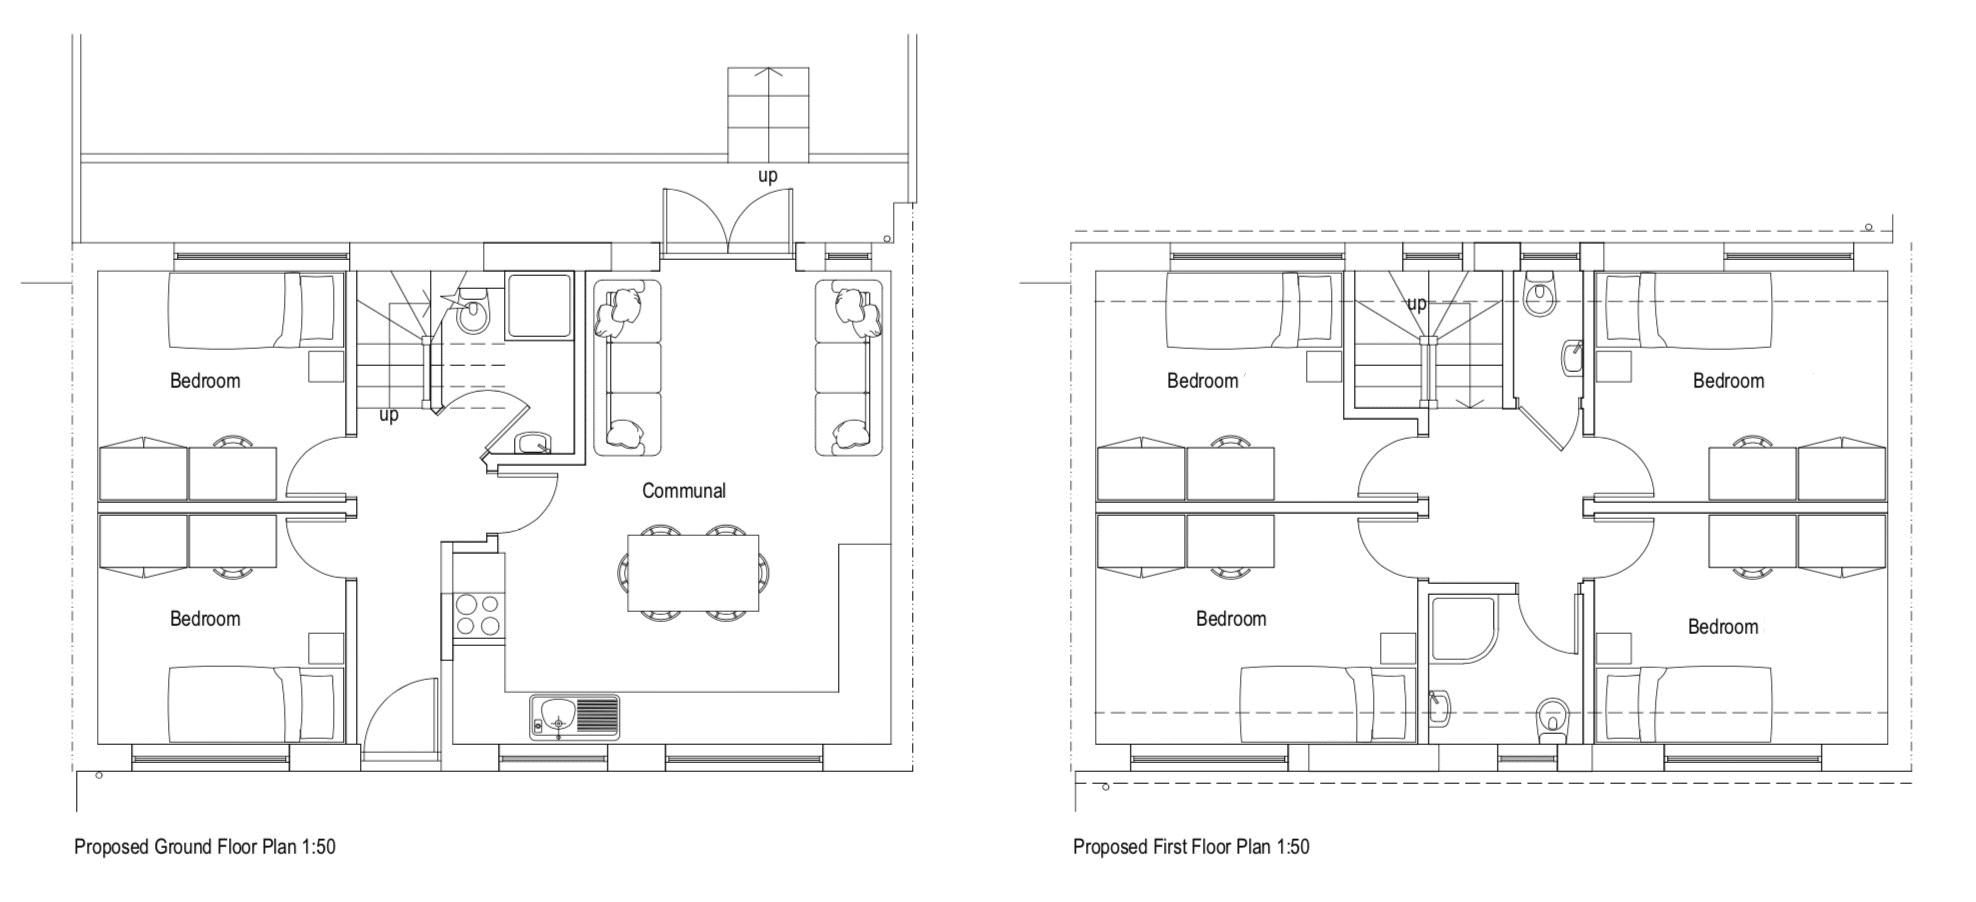 Floor plans for Twyford Road, Brighton property for sale in Coldean, Brighton by Coapt